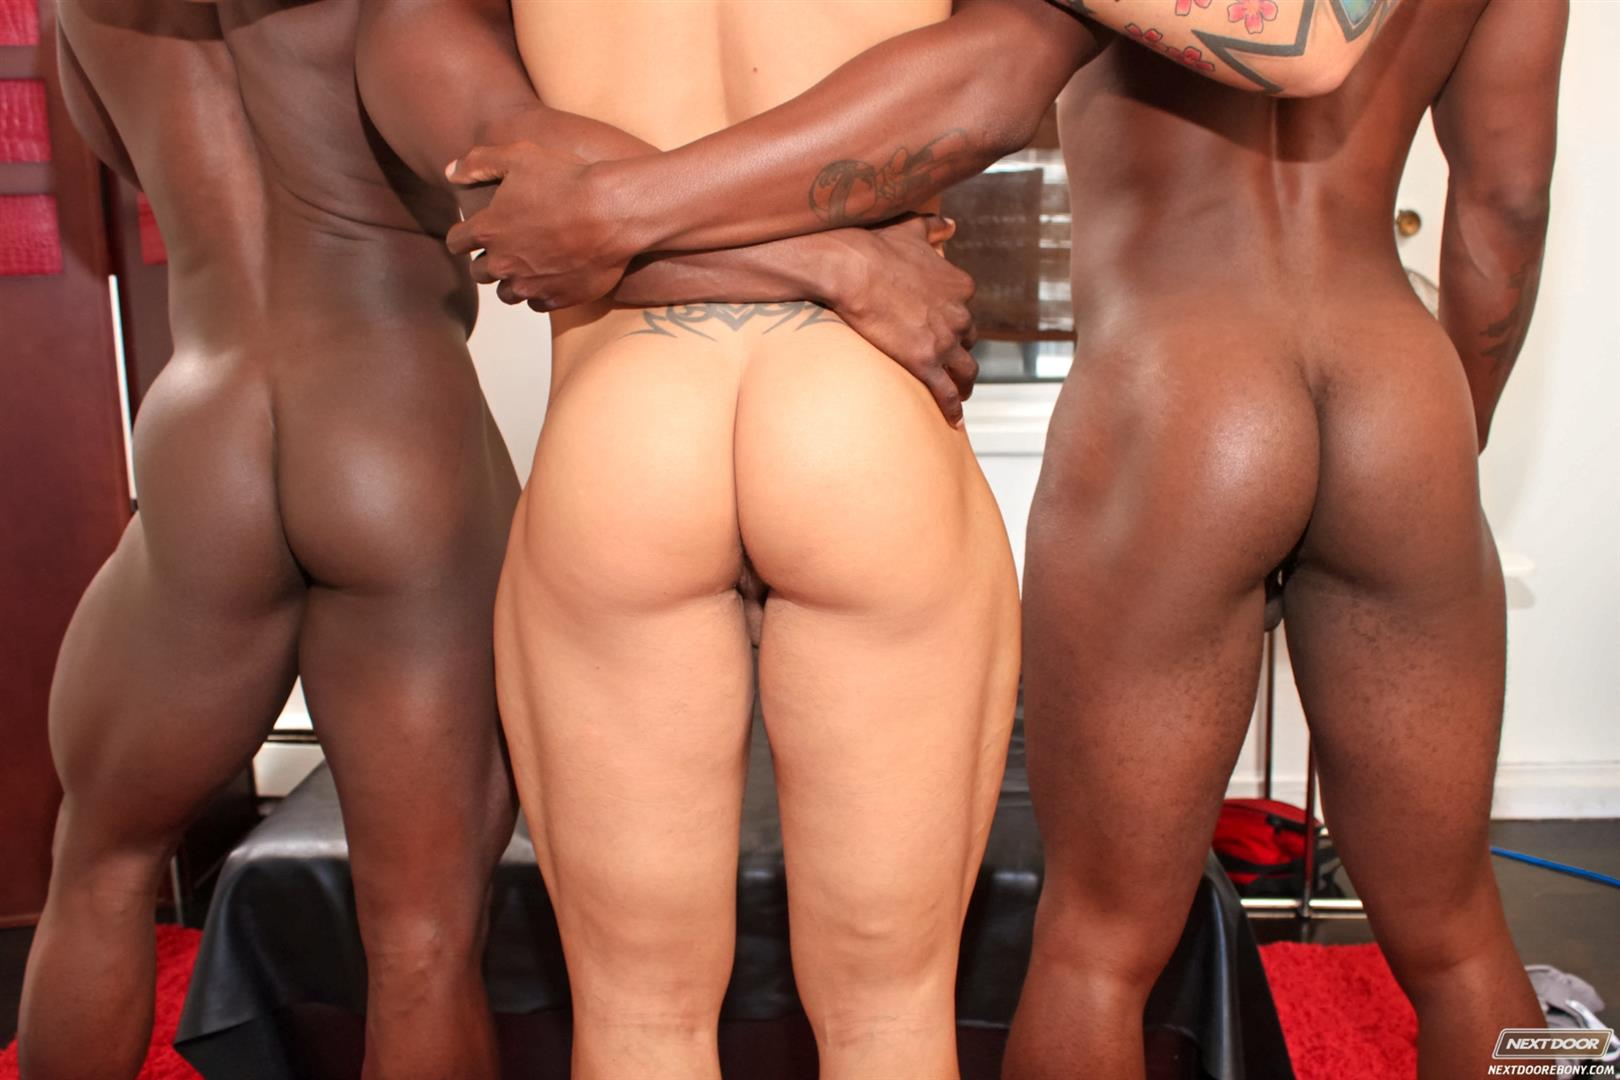 Next-Door-Ebony-Jordano-Santoro-and-Jay-Black-and-Damian-Brooks-Interracial-Gay-Fucking-Threeway-Amateur-Gay-Porn-05 Interracial Muscle Couple Picks Up A Black Muscle Stud In The Park